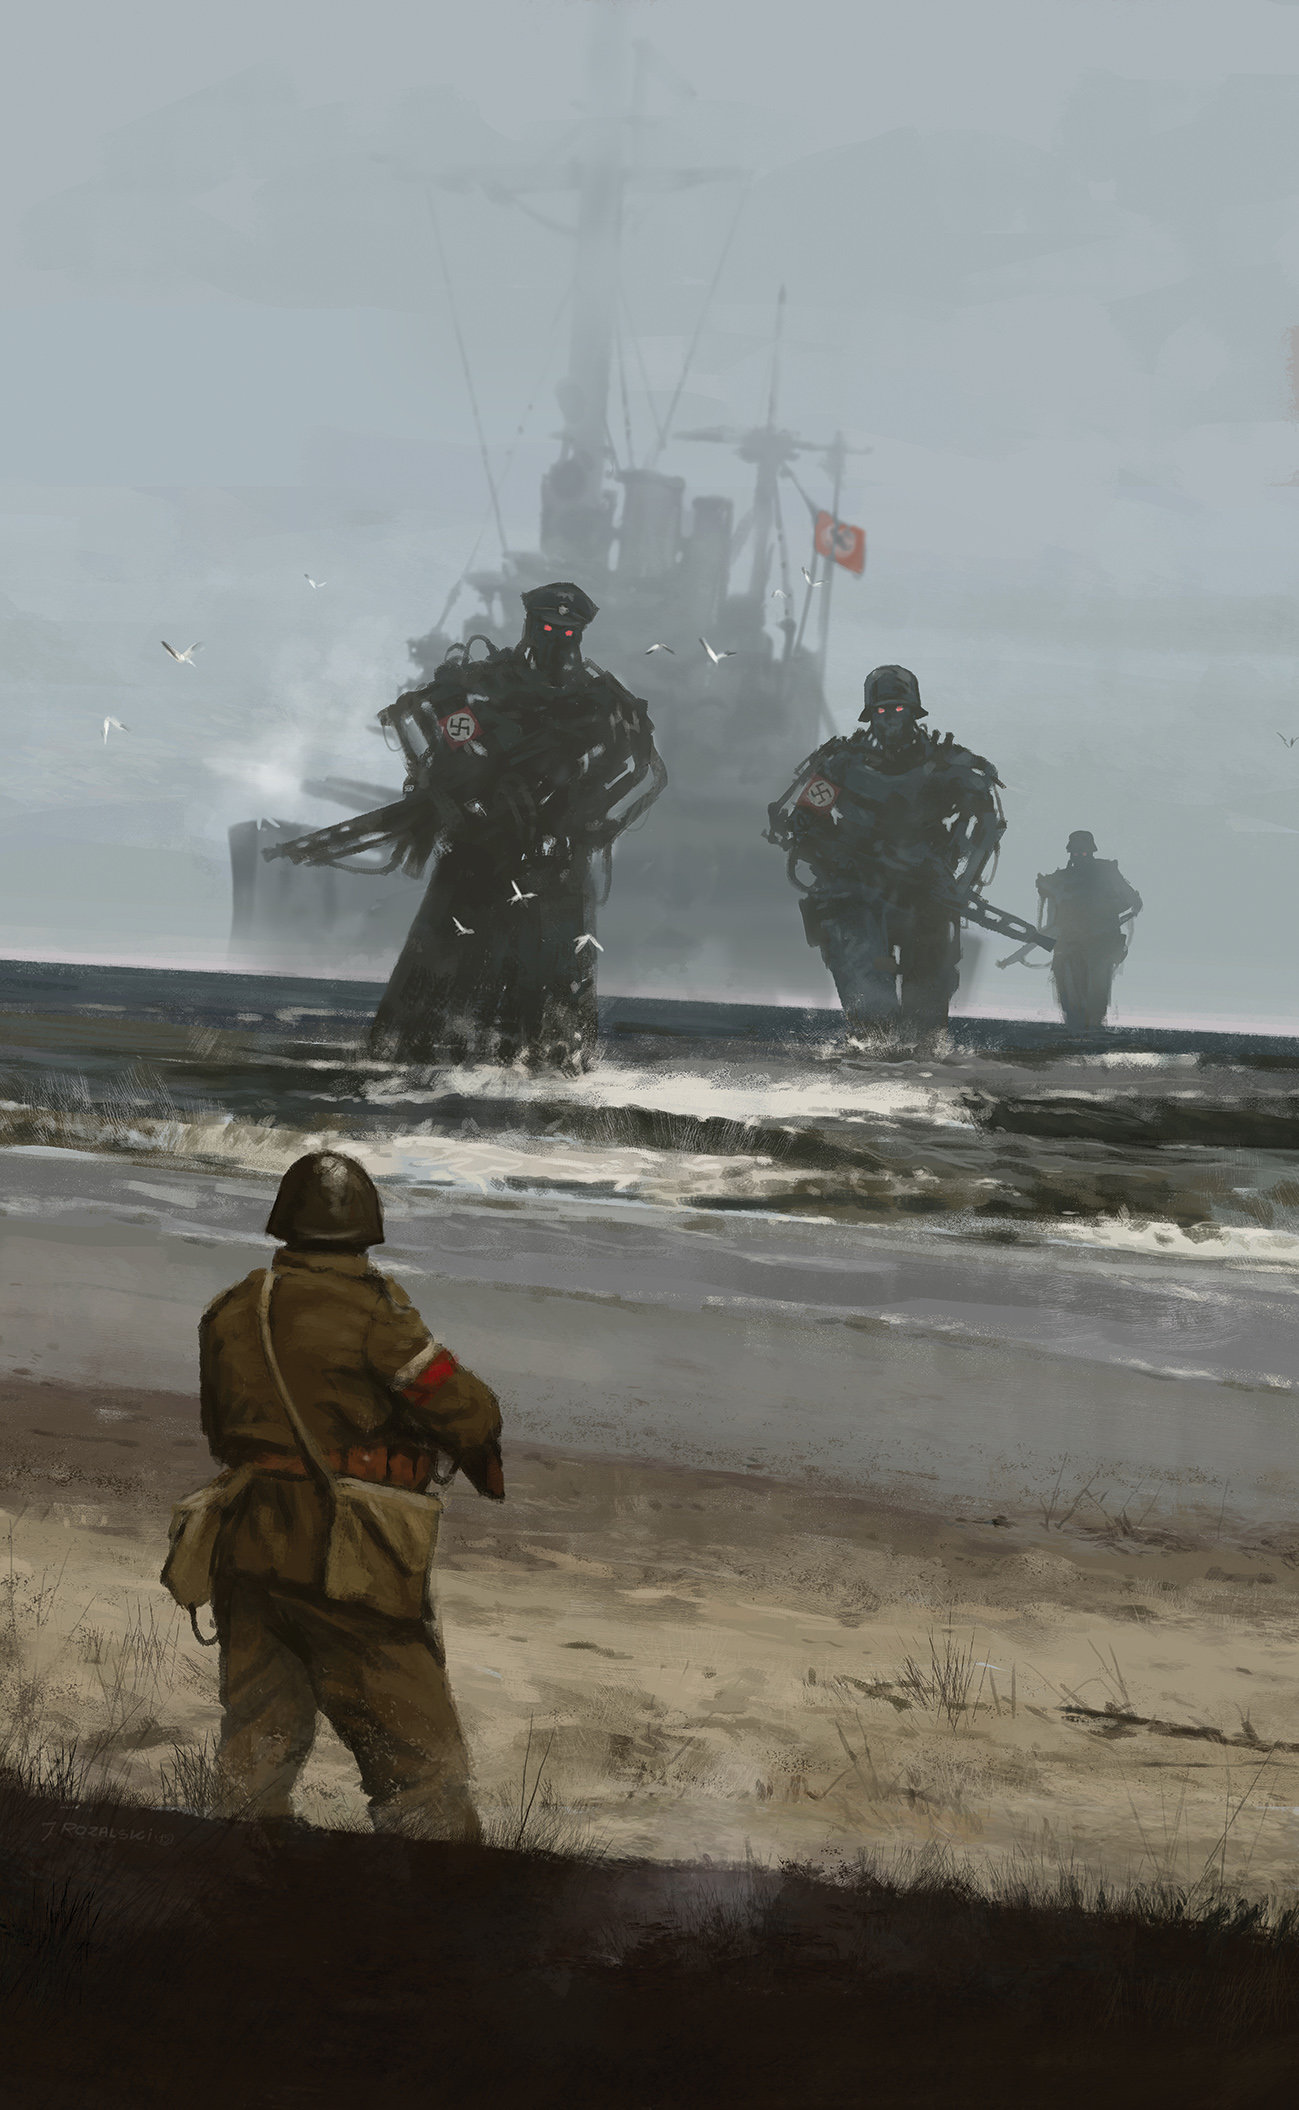 """""""Westerplatte"""" Note the Polish infantryman vs Nazi mechs and the SMS Schleswig-Holstein https://laststandonzombieisland.com/2015/01/21/warship-wednesday-january-21-2015-a-teutonic-heavy-in-two-world-wars/"""